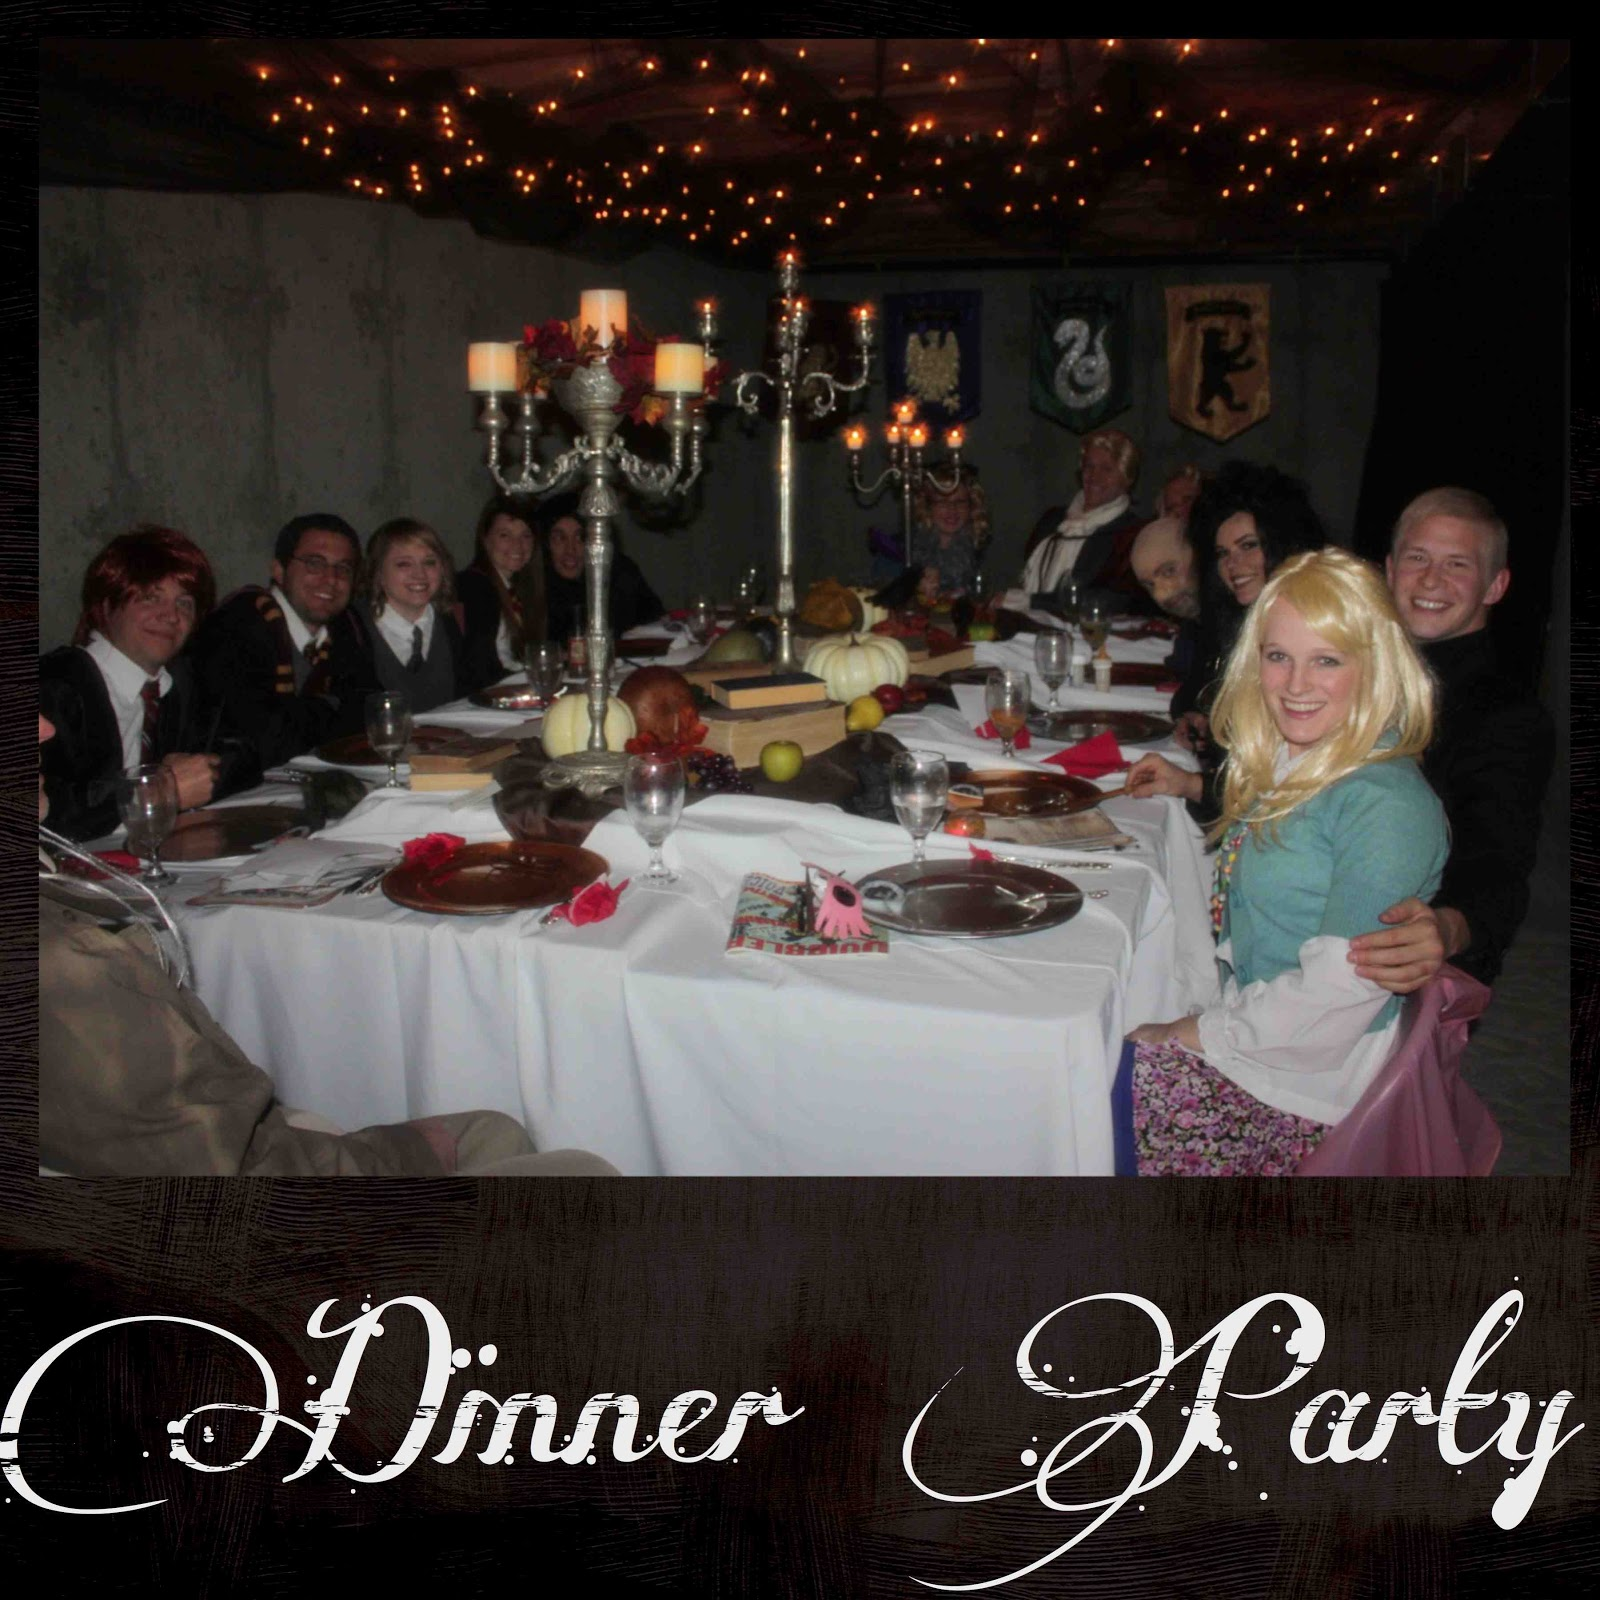 Murder Mystery Dinner Party Ideas Part - 25: So Now For The Harry Potter Mystery Dinner Party